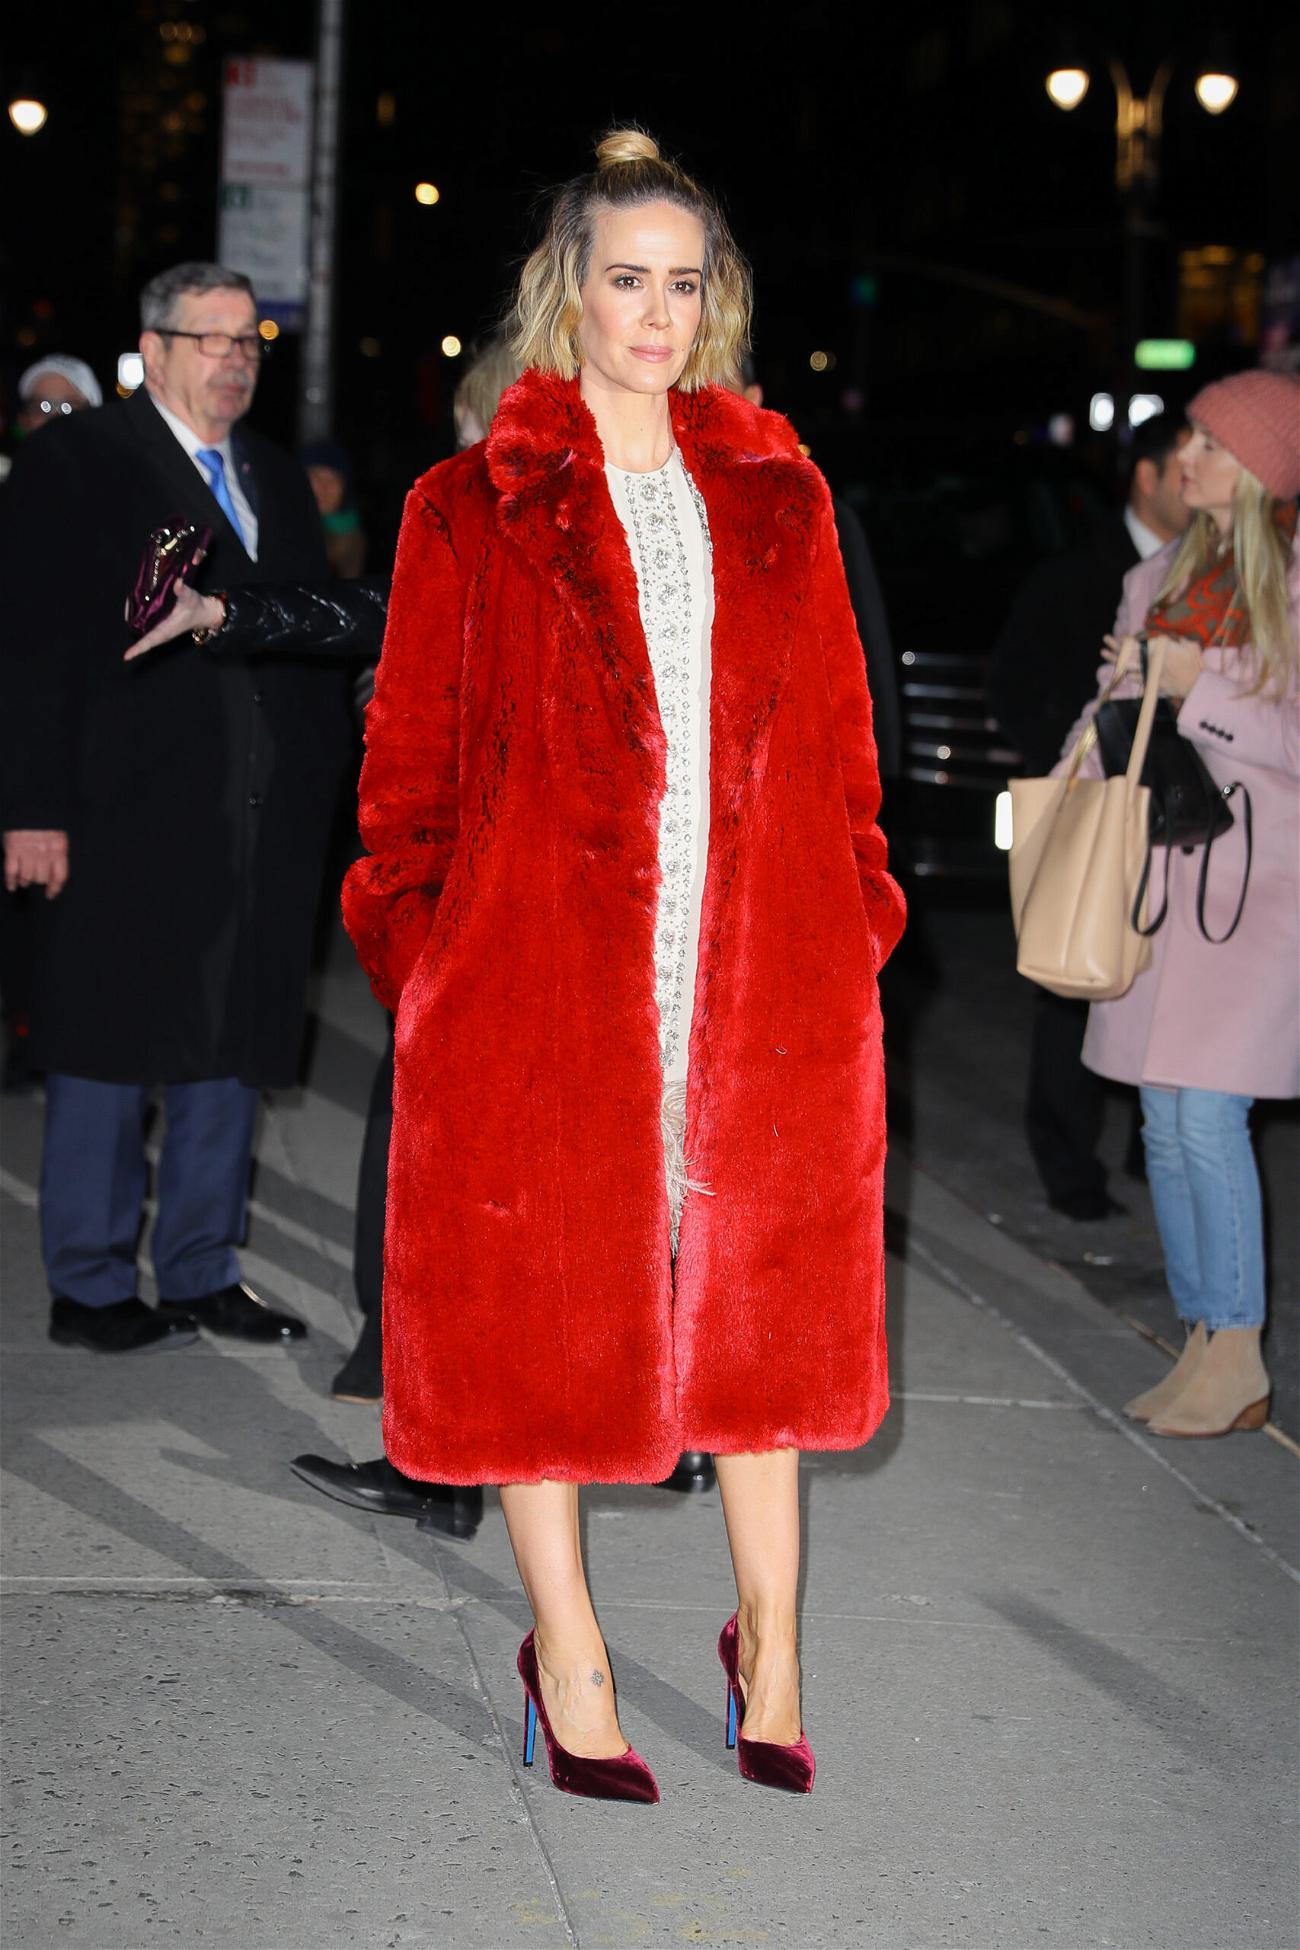 Sarah Paulson wears a red coat while arriving at The Late Show with Stephen Colbert in NYC on Jan 17 2019